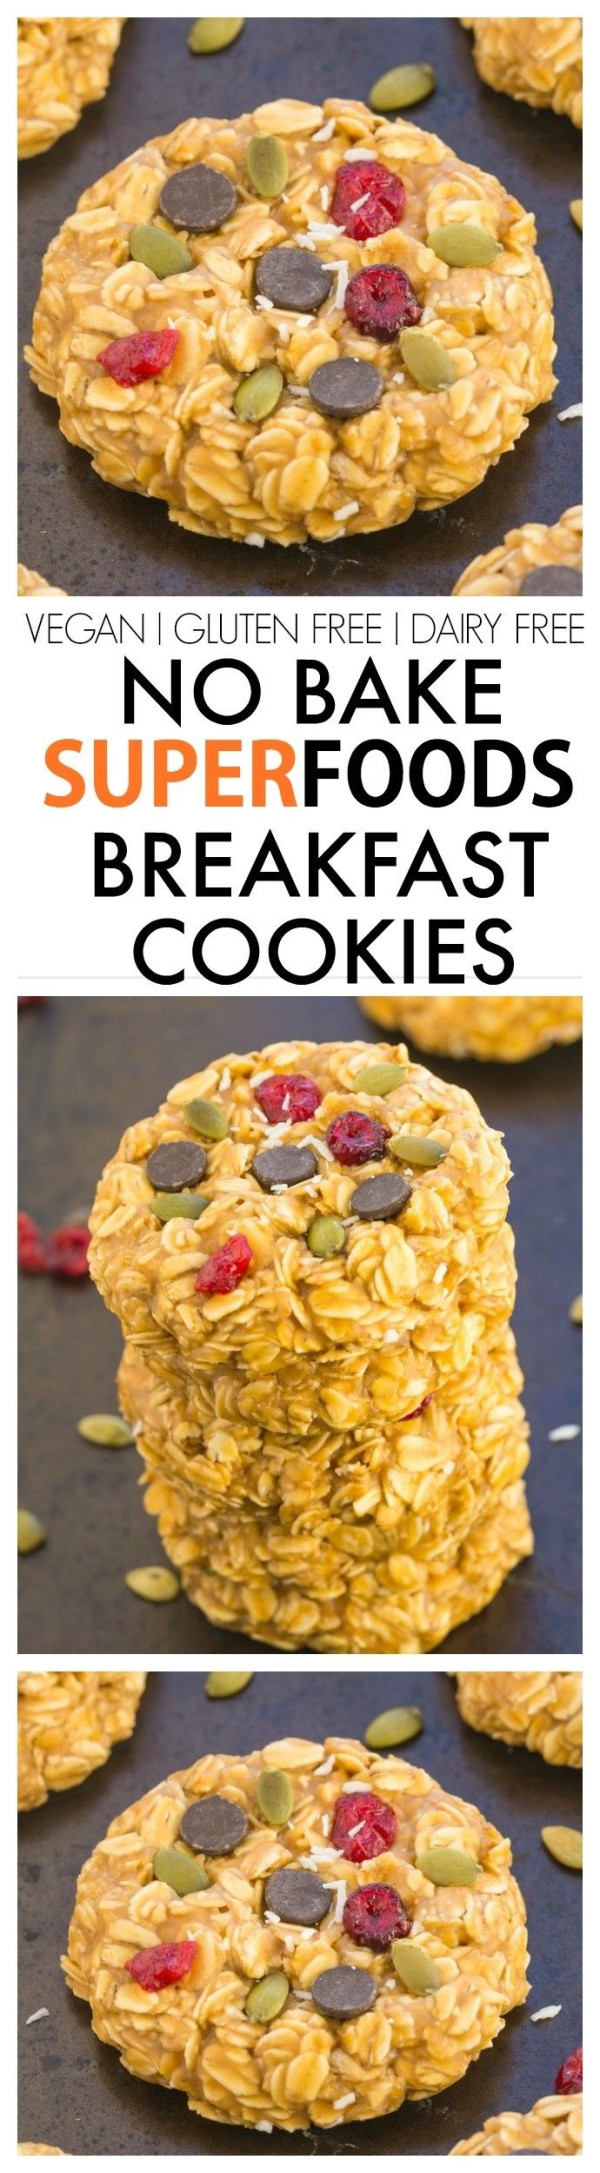 Gluten Free Dairy Free No Bake Cookies  Healthy No Bake Superfoods detox Breakfast Cookies